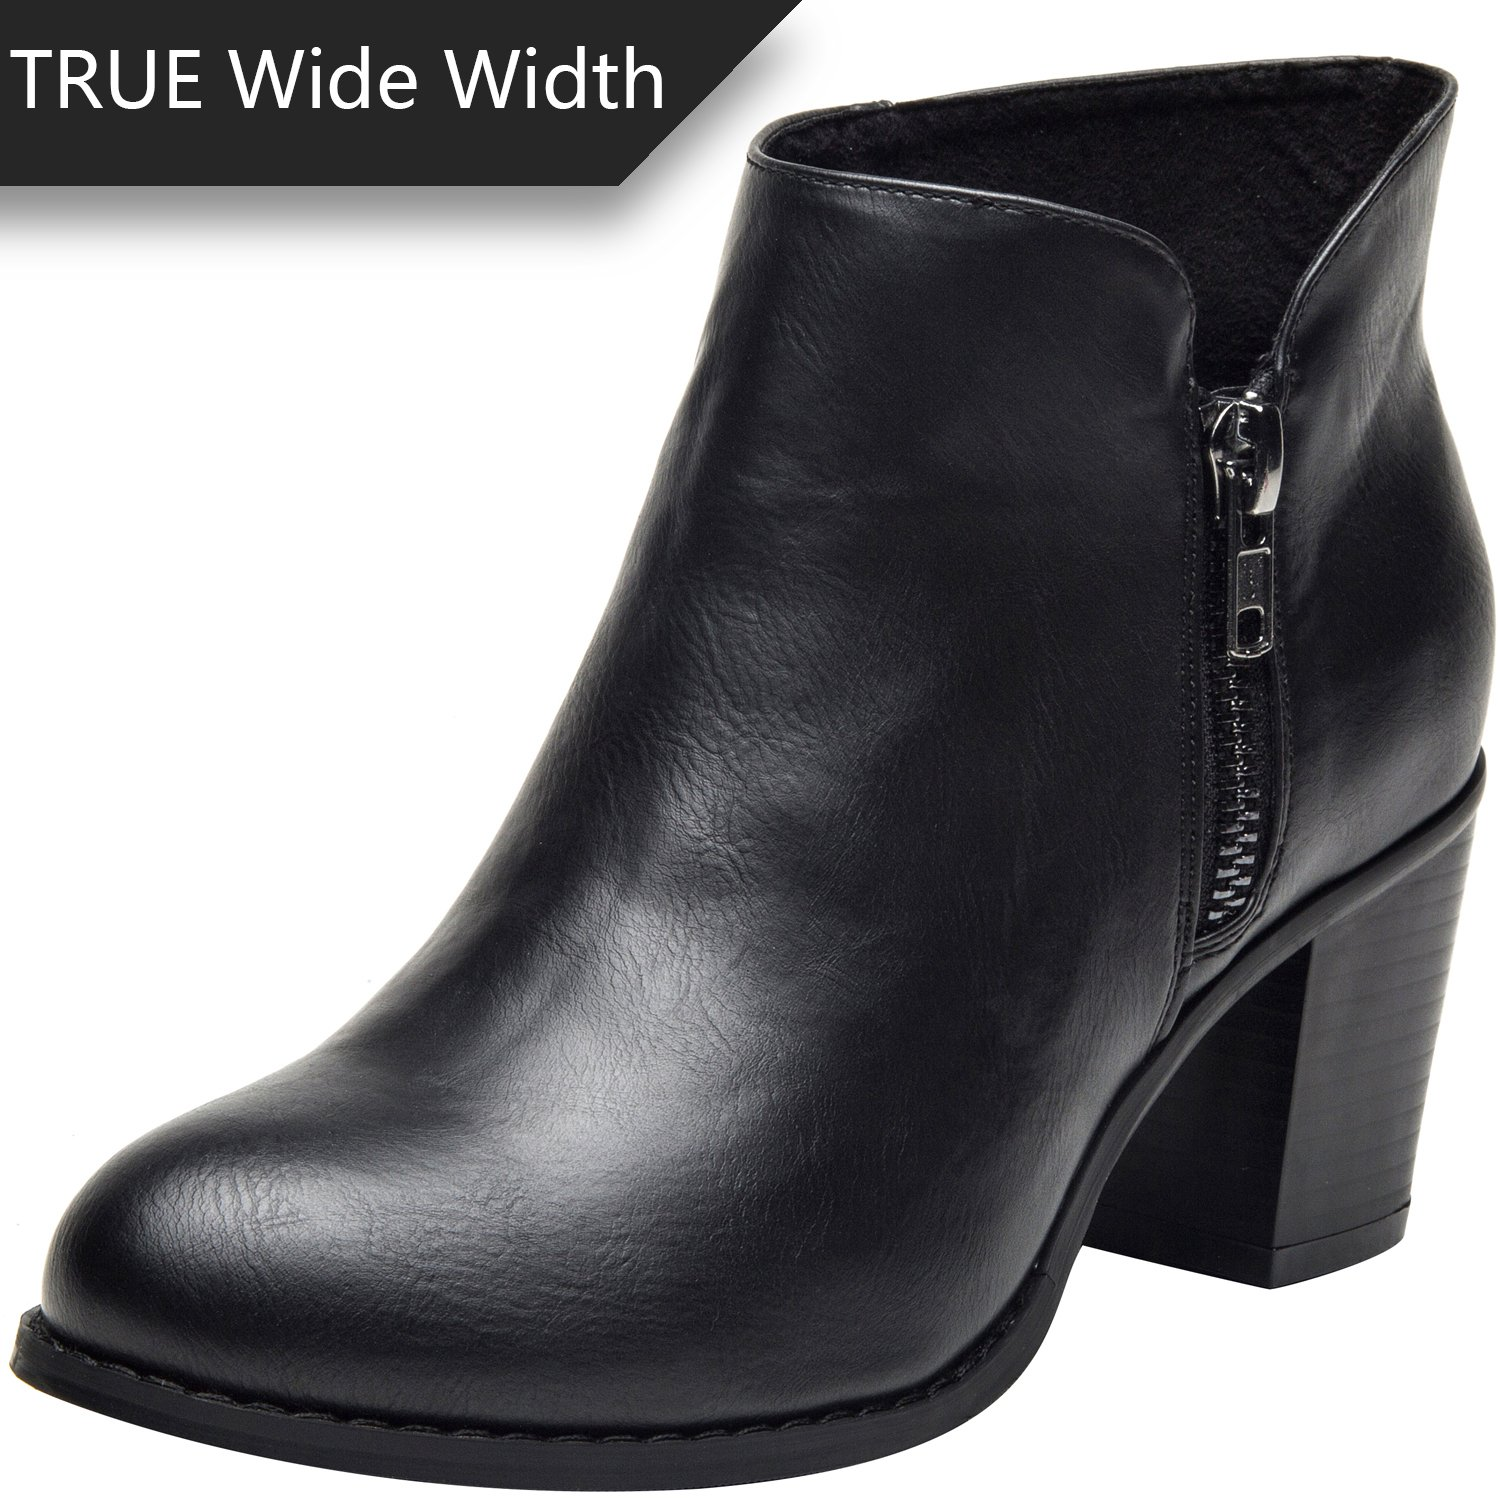 Plus Size Short Ankle Boots for Women, Autumn Winter Spring Mid Chunky Block Stacked Heels Round Toe Slip on Waist Zipper Wide Sole Boots for Lady Black US Size 8 WW